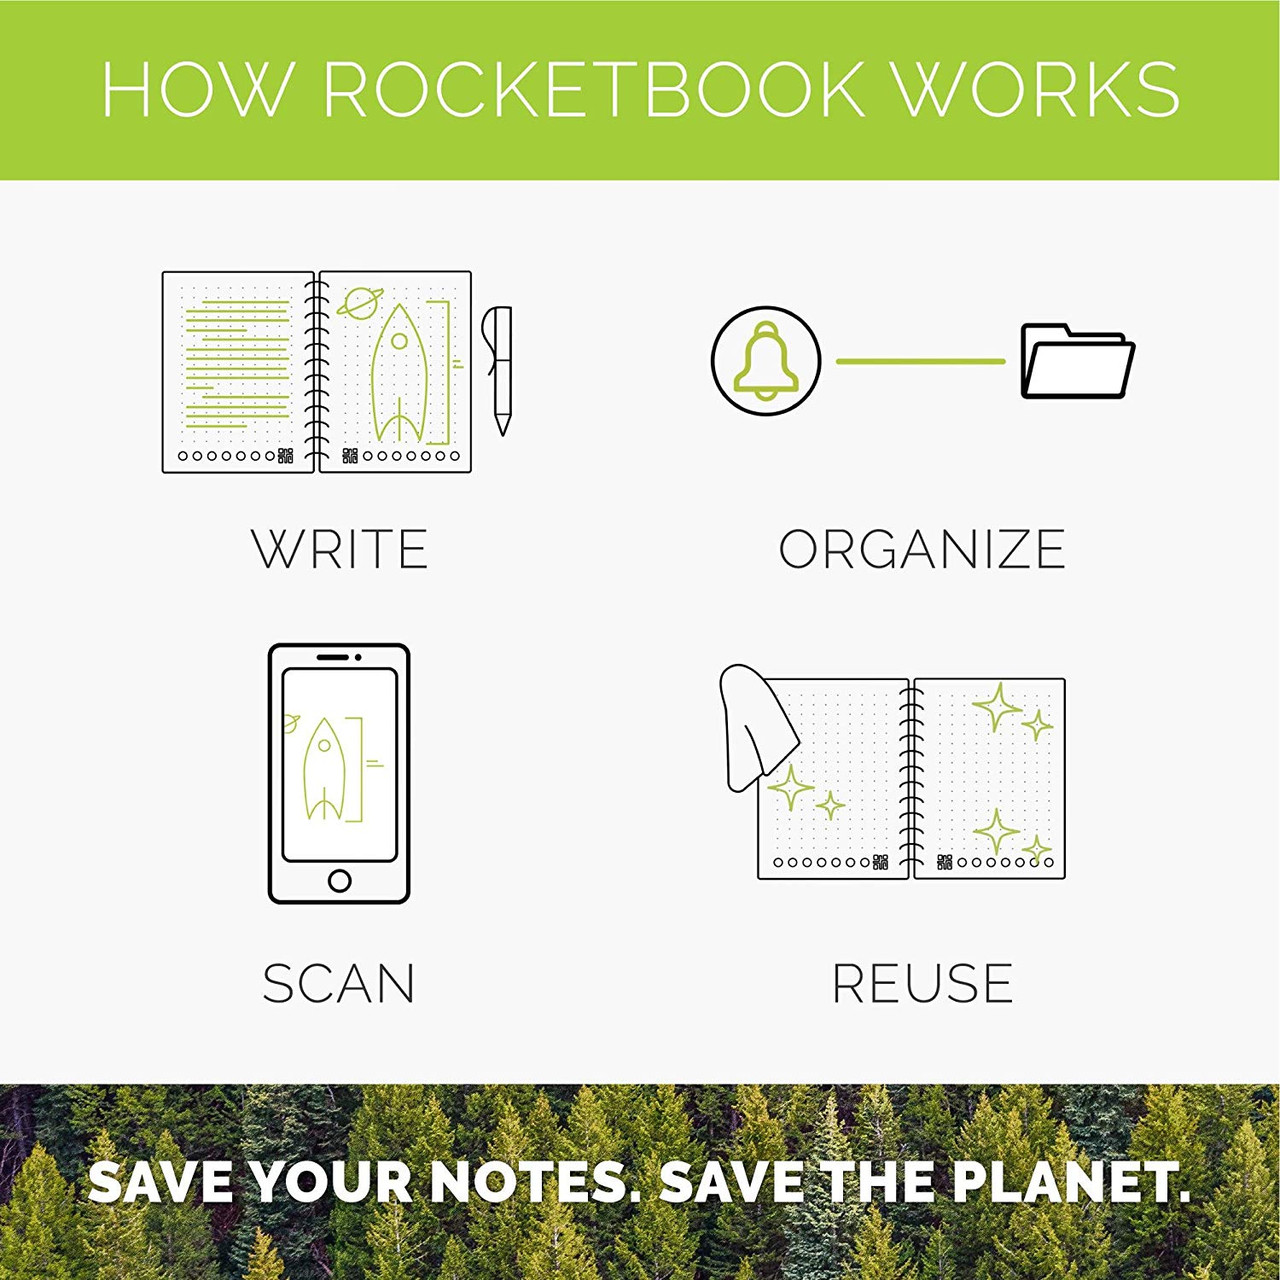 Rocketbook EVR-L-K-CME Everlast Smart Reusable Notebook with Pen and Microfiber Cloth, Letter Size, Scarlet Red